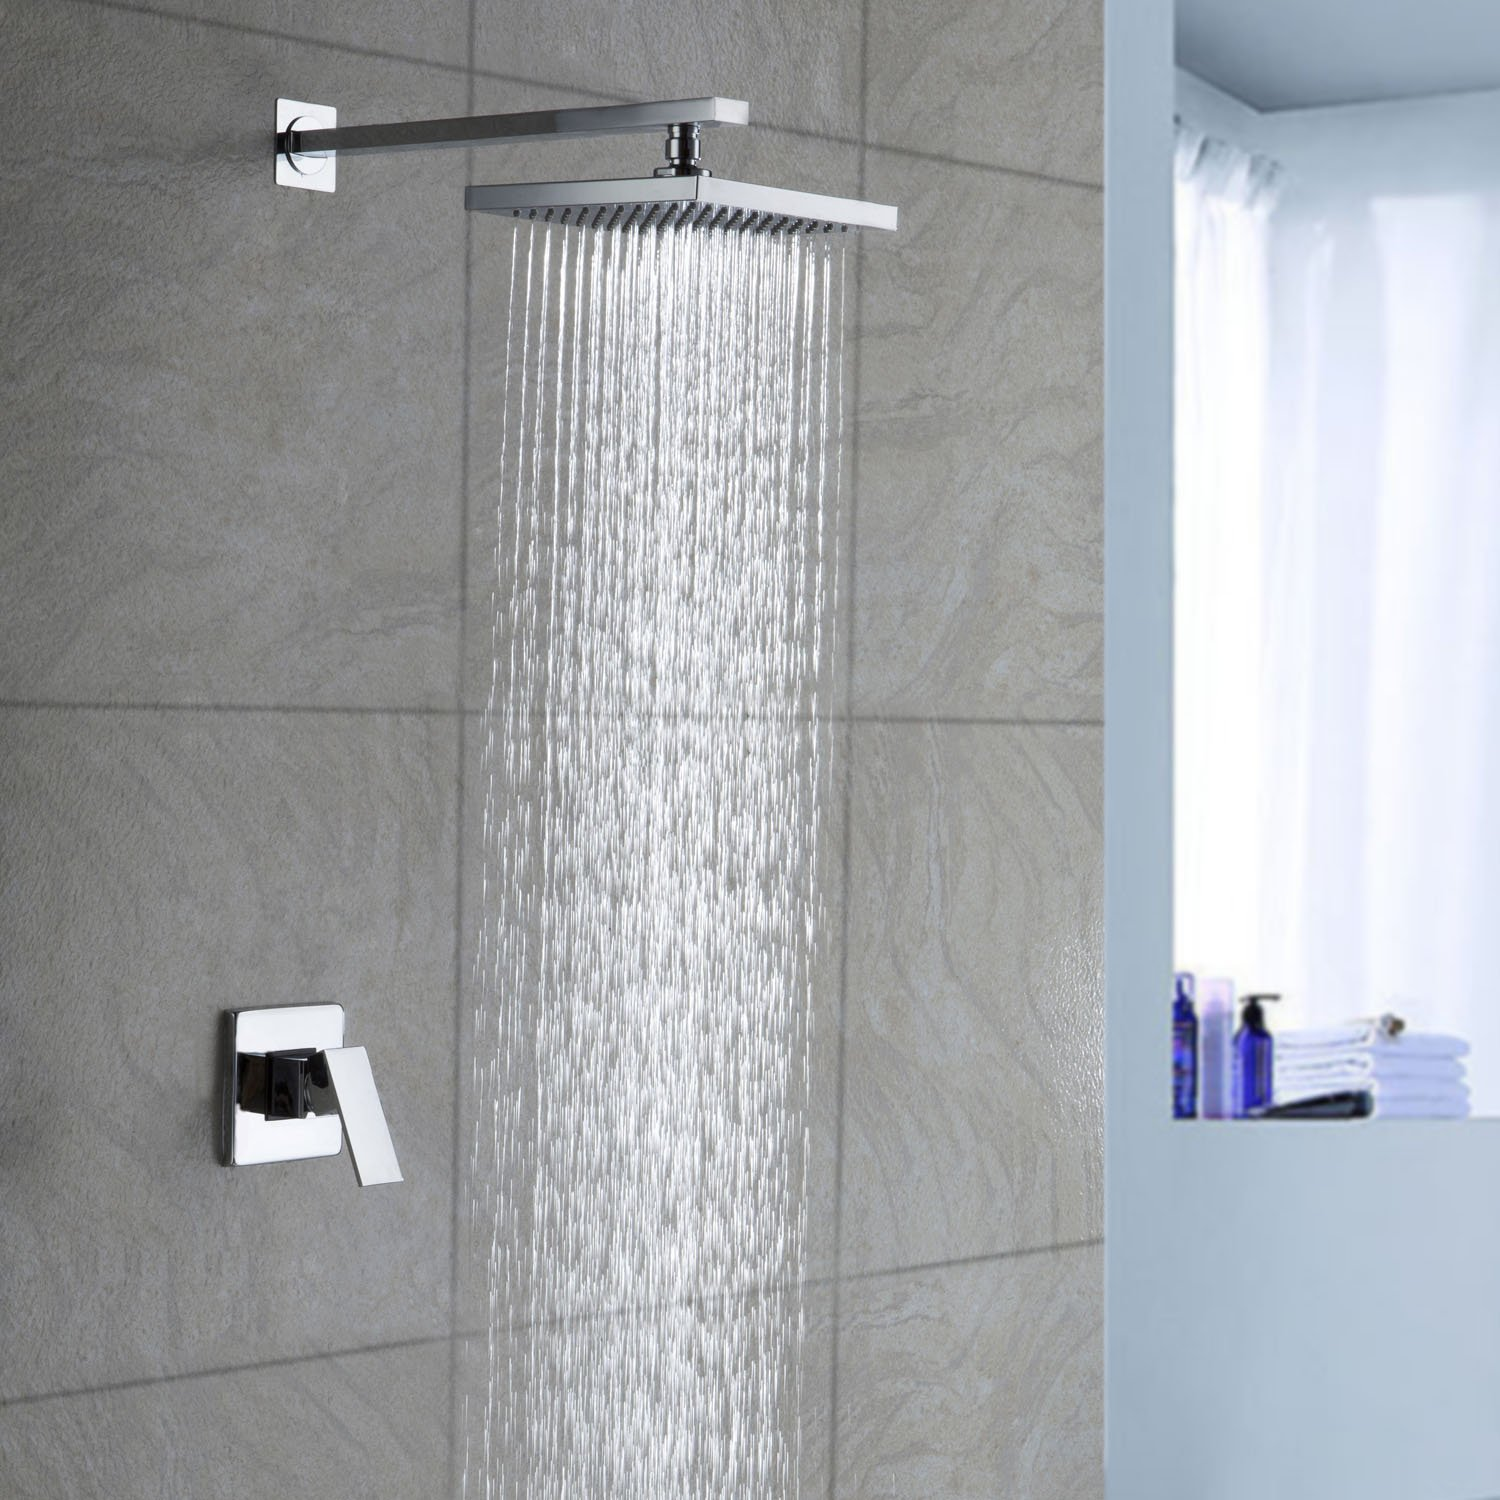 dp top shower amazon sprayer bathroom stainless steel rain head giantex rainfall square com